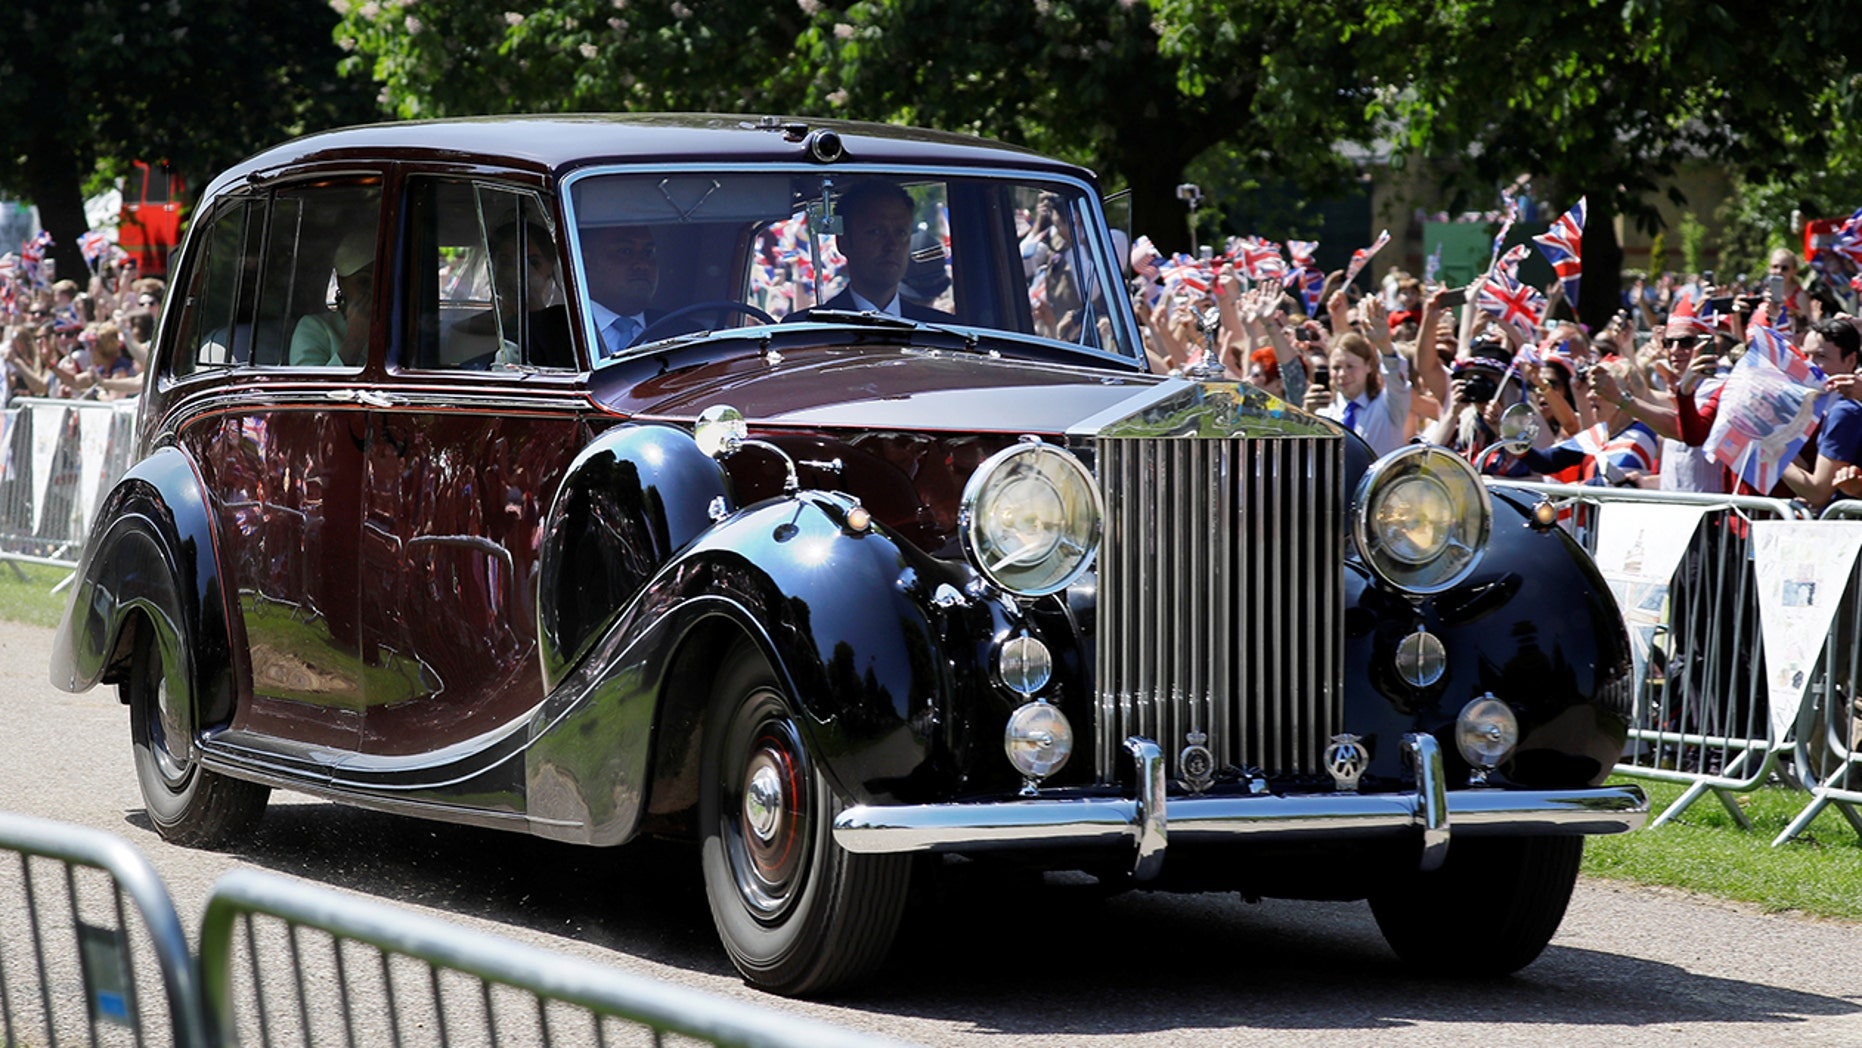 The royals' 1950 Rolls-Royce Phantom IV is worth over $1 million.